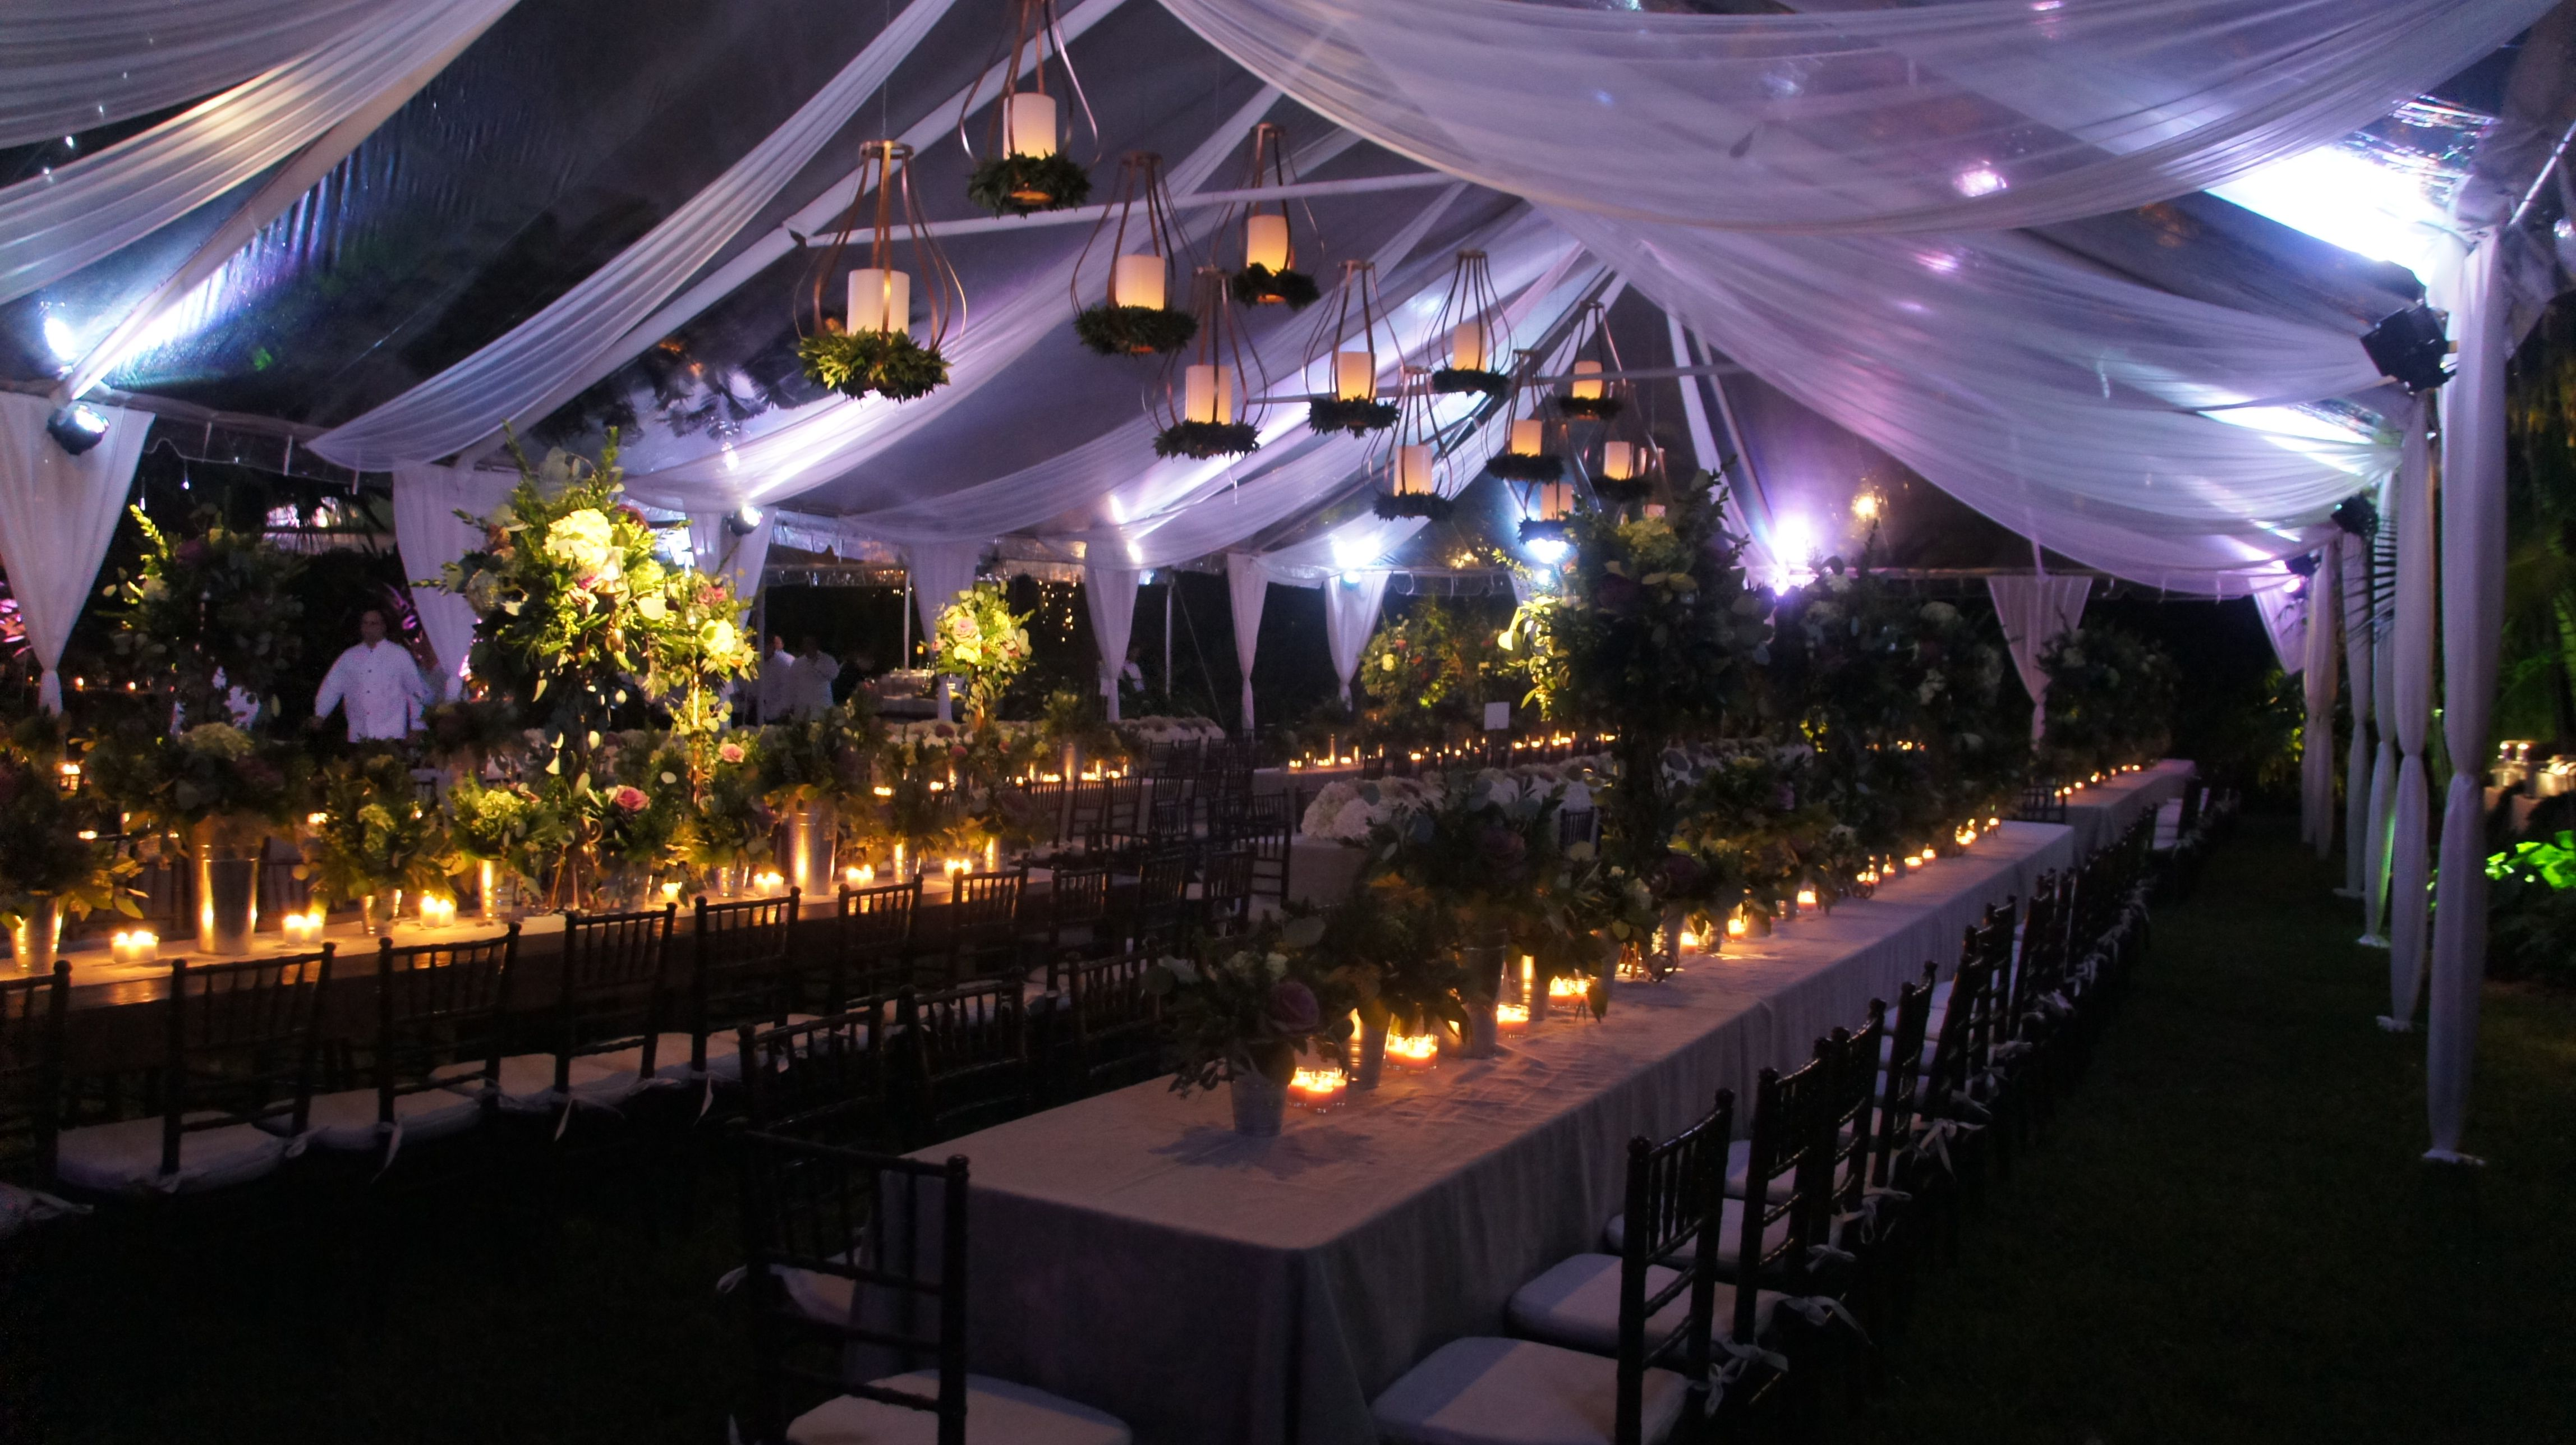 Your Friends Away With These Awesome Party Tent Lighting Ideas For Next Outdoor Evening Event Give Guests The Ambiance They Deserve